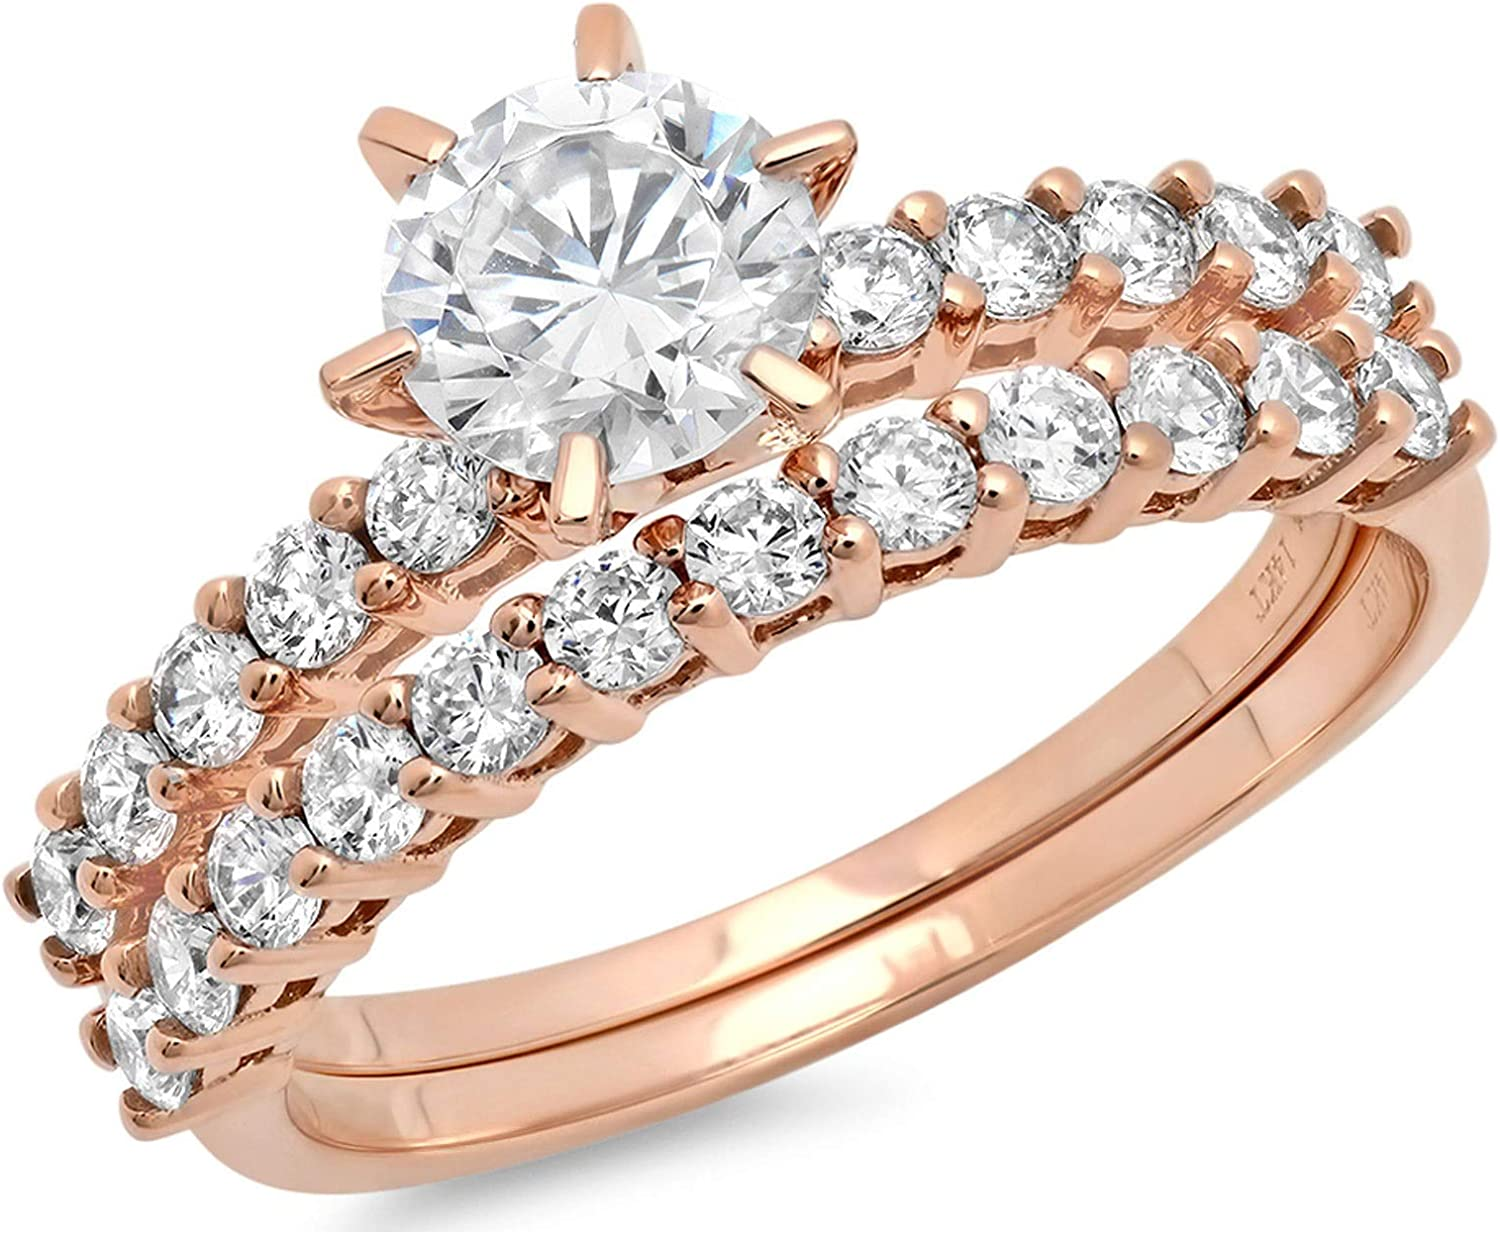 3.0ct Round Cut Pave Solitaire Accent Lab Created White Sapphire & Simulated Diamond Engagement Promise Statement Anniversary Bridal Wedding Ring Band set Real Solid 14k Rose Gold